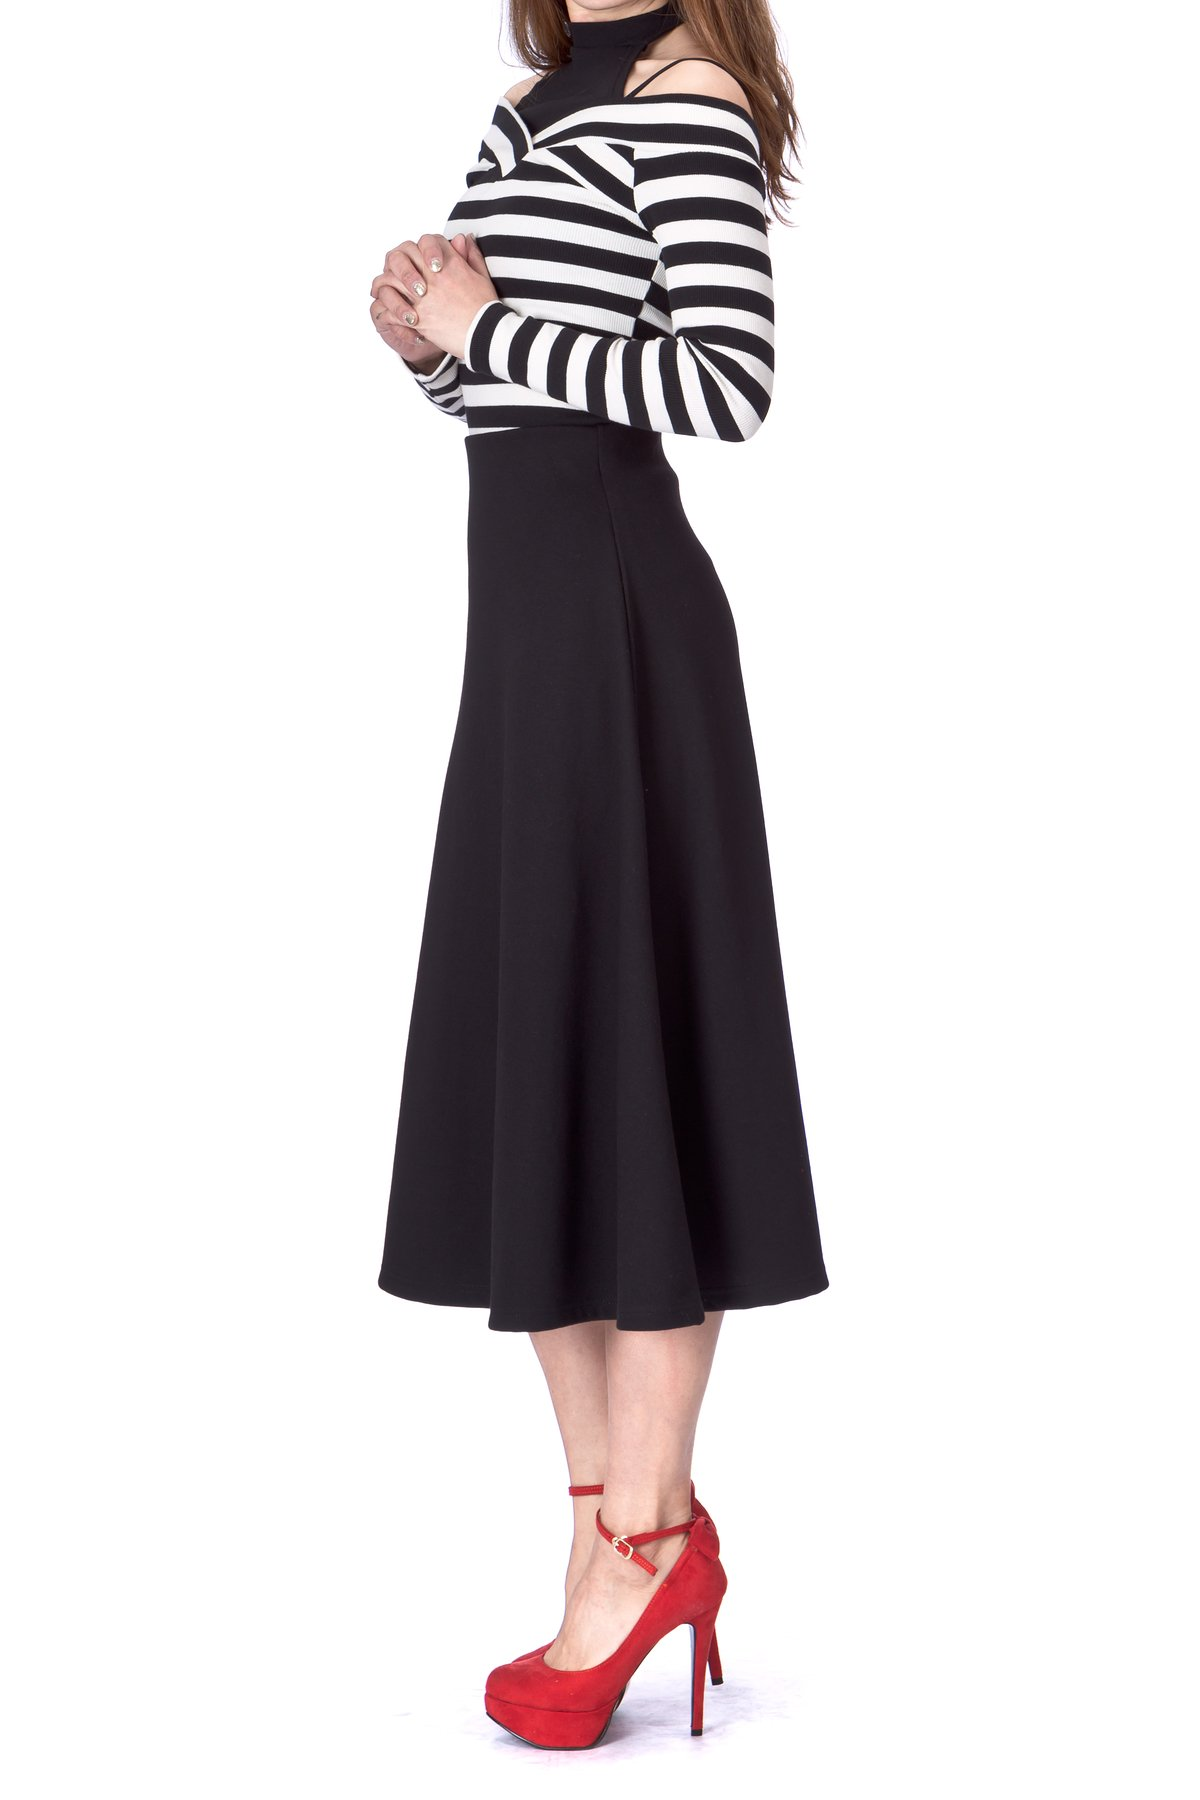 Elastic Waist A line Flared Long Skirt Black 02